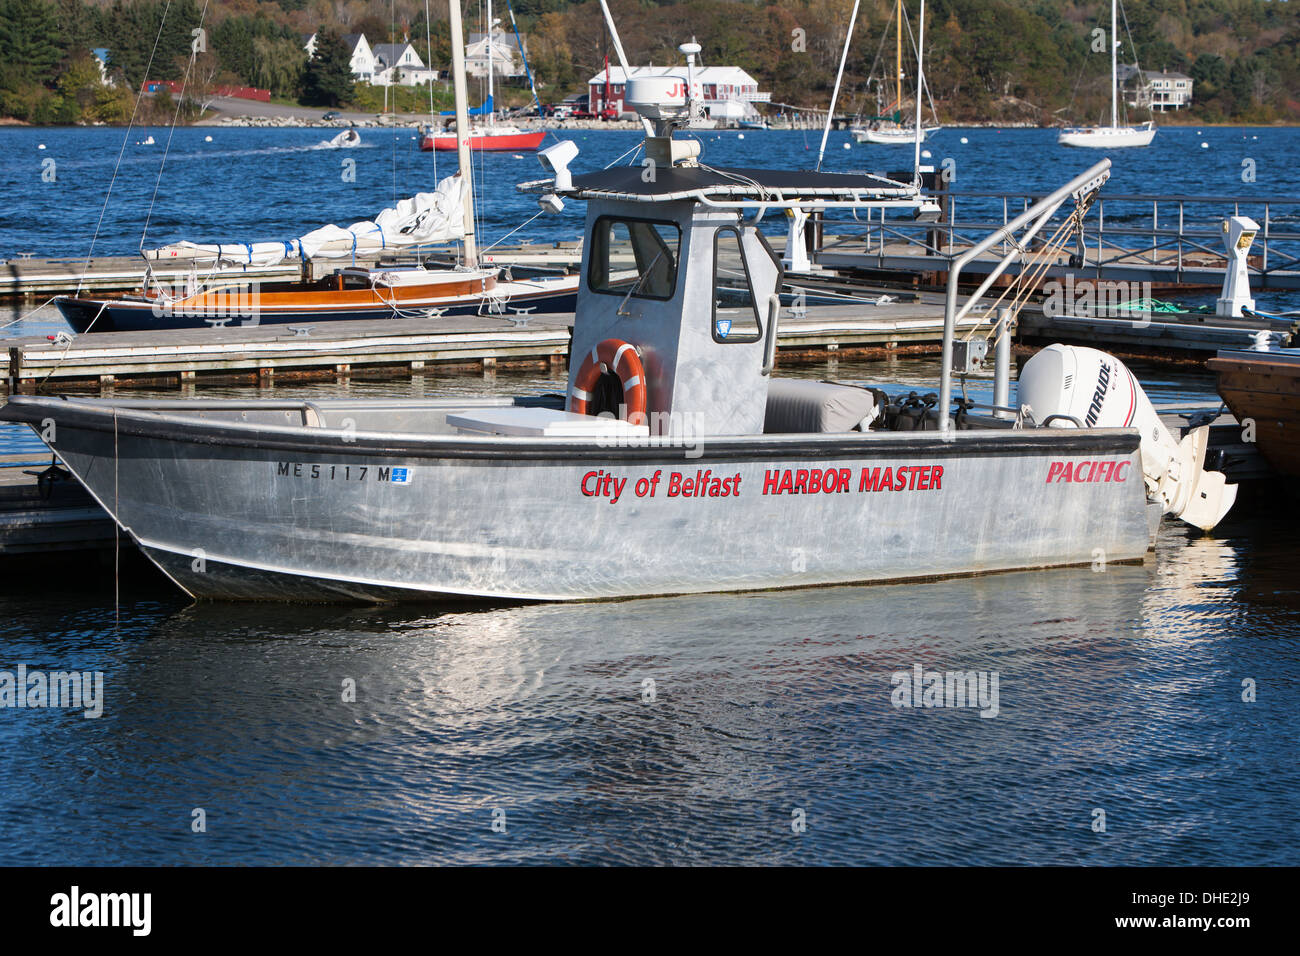 The Harbor Master's boat anchored at the public landing in Belfast, Maine. - Stock Image